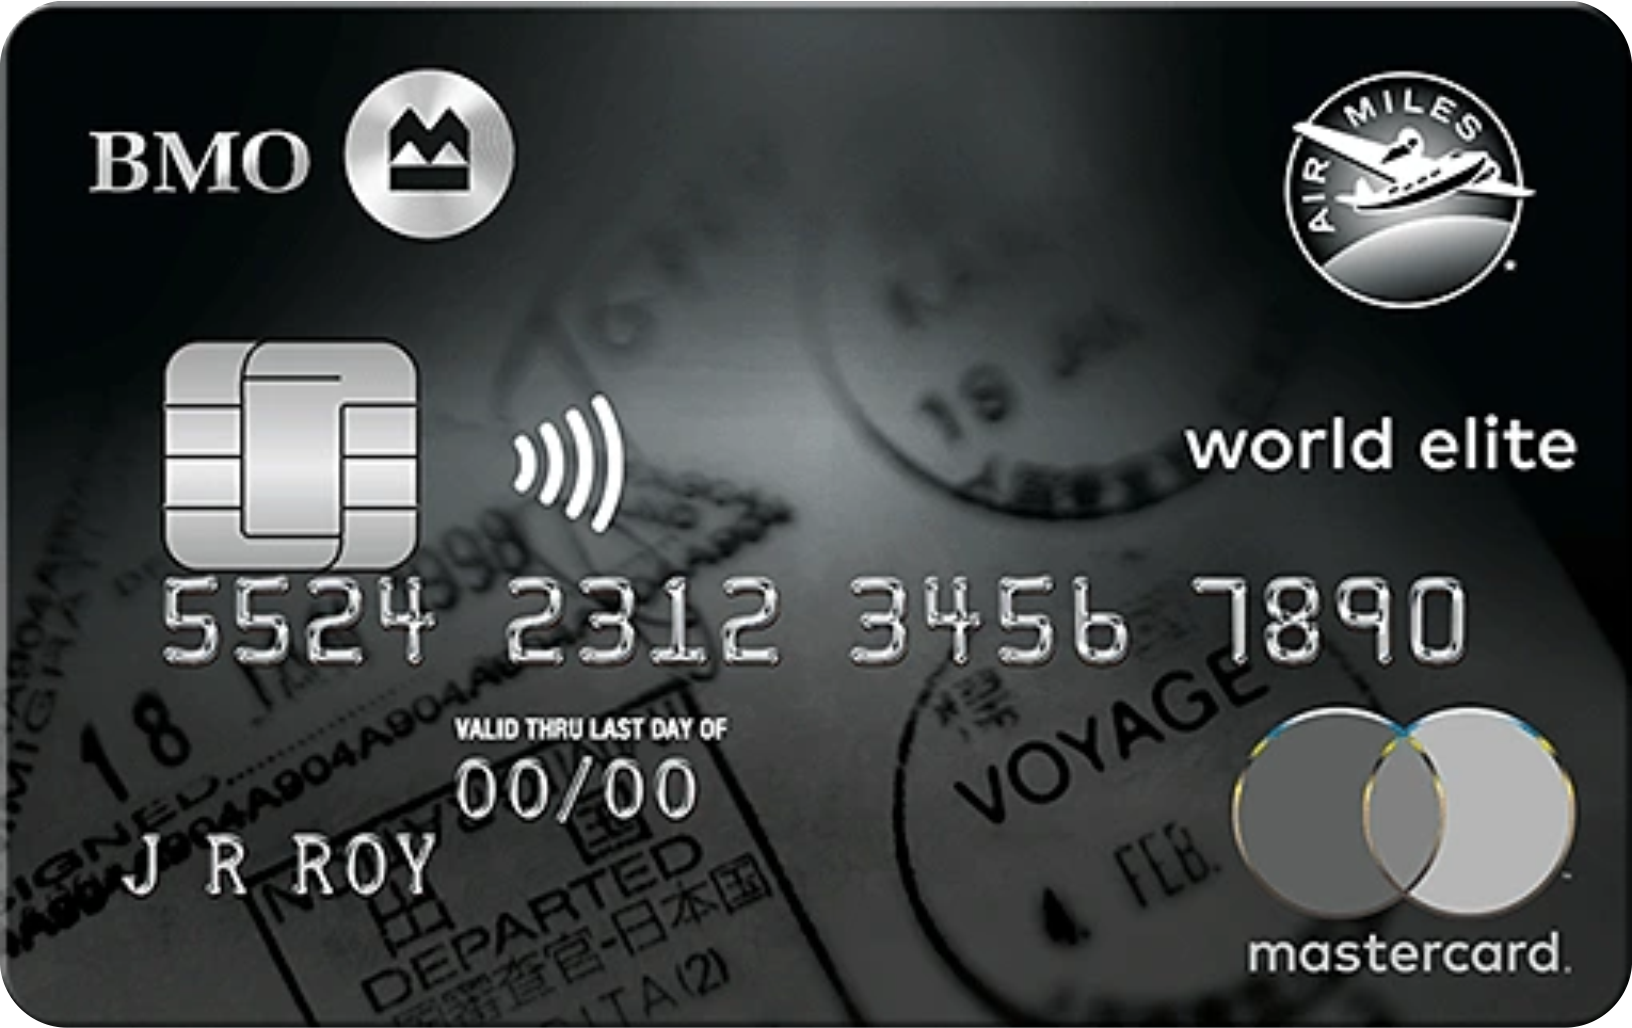 BMO® AIR MILES® World Elite® MasterCard® logo